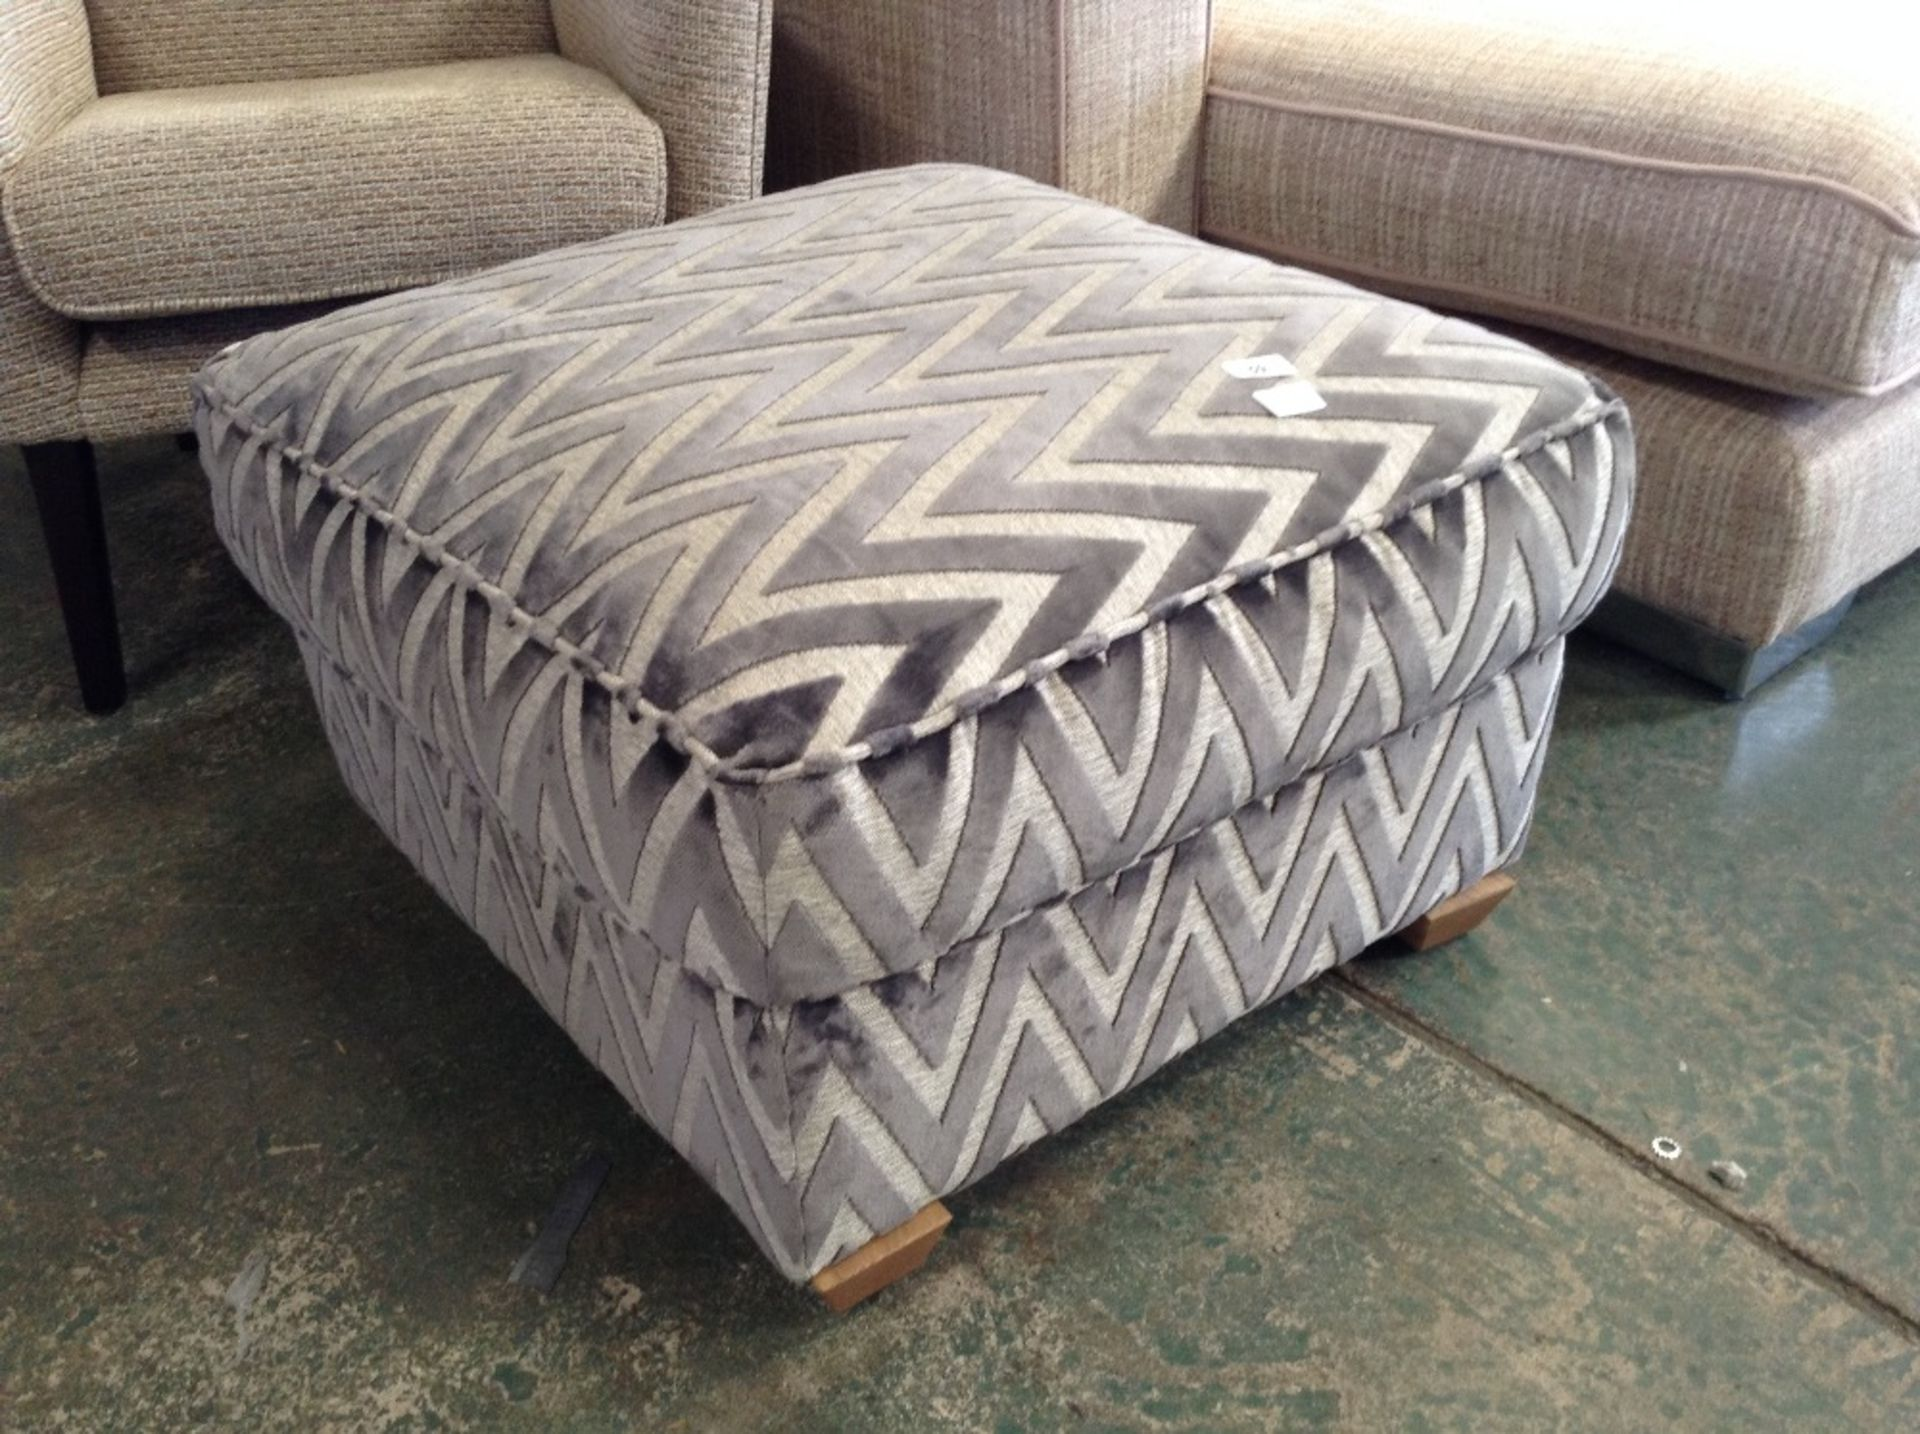 Lotto 59 - GREY AND SILVER PATTERNED FOOTSTOOL (WM58-16)